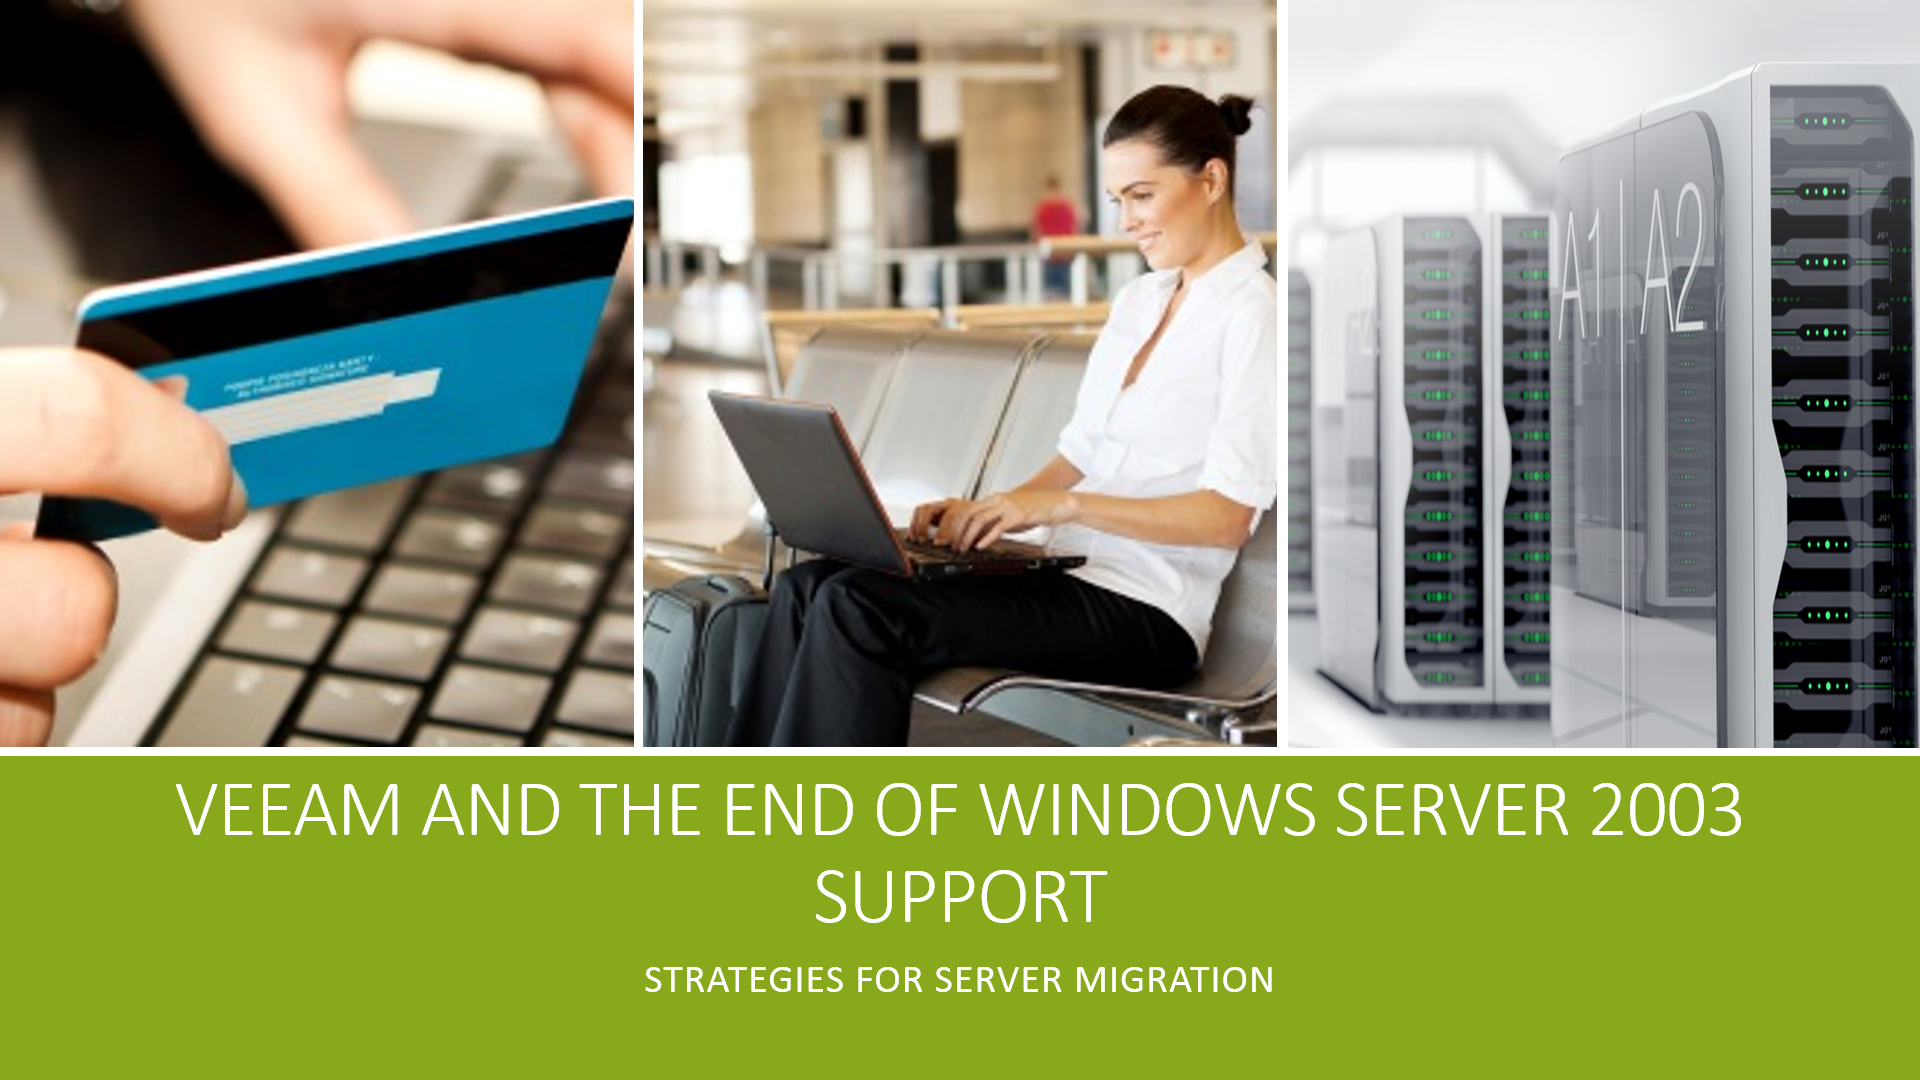 Windows Server 2003 Migrations made easy with Veeam